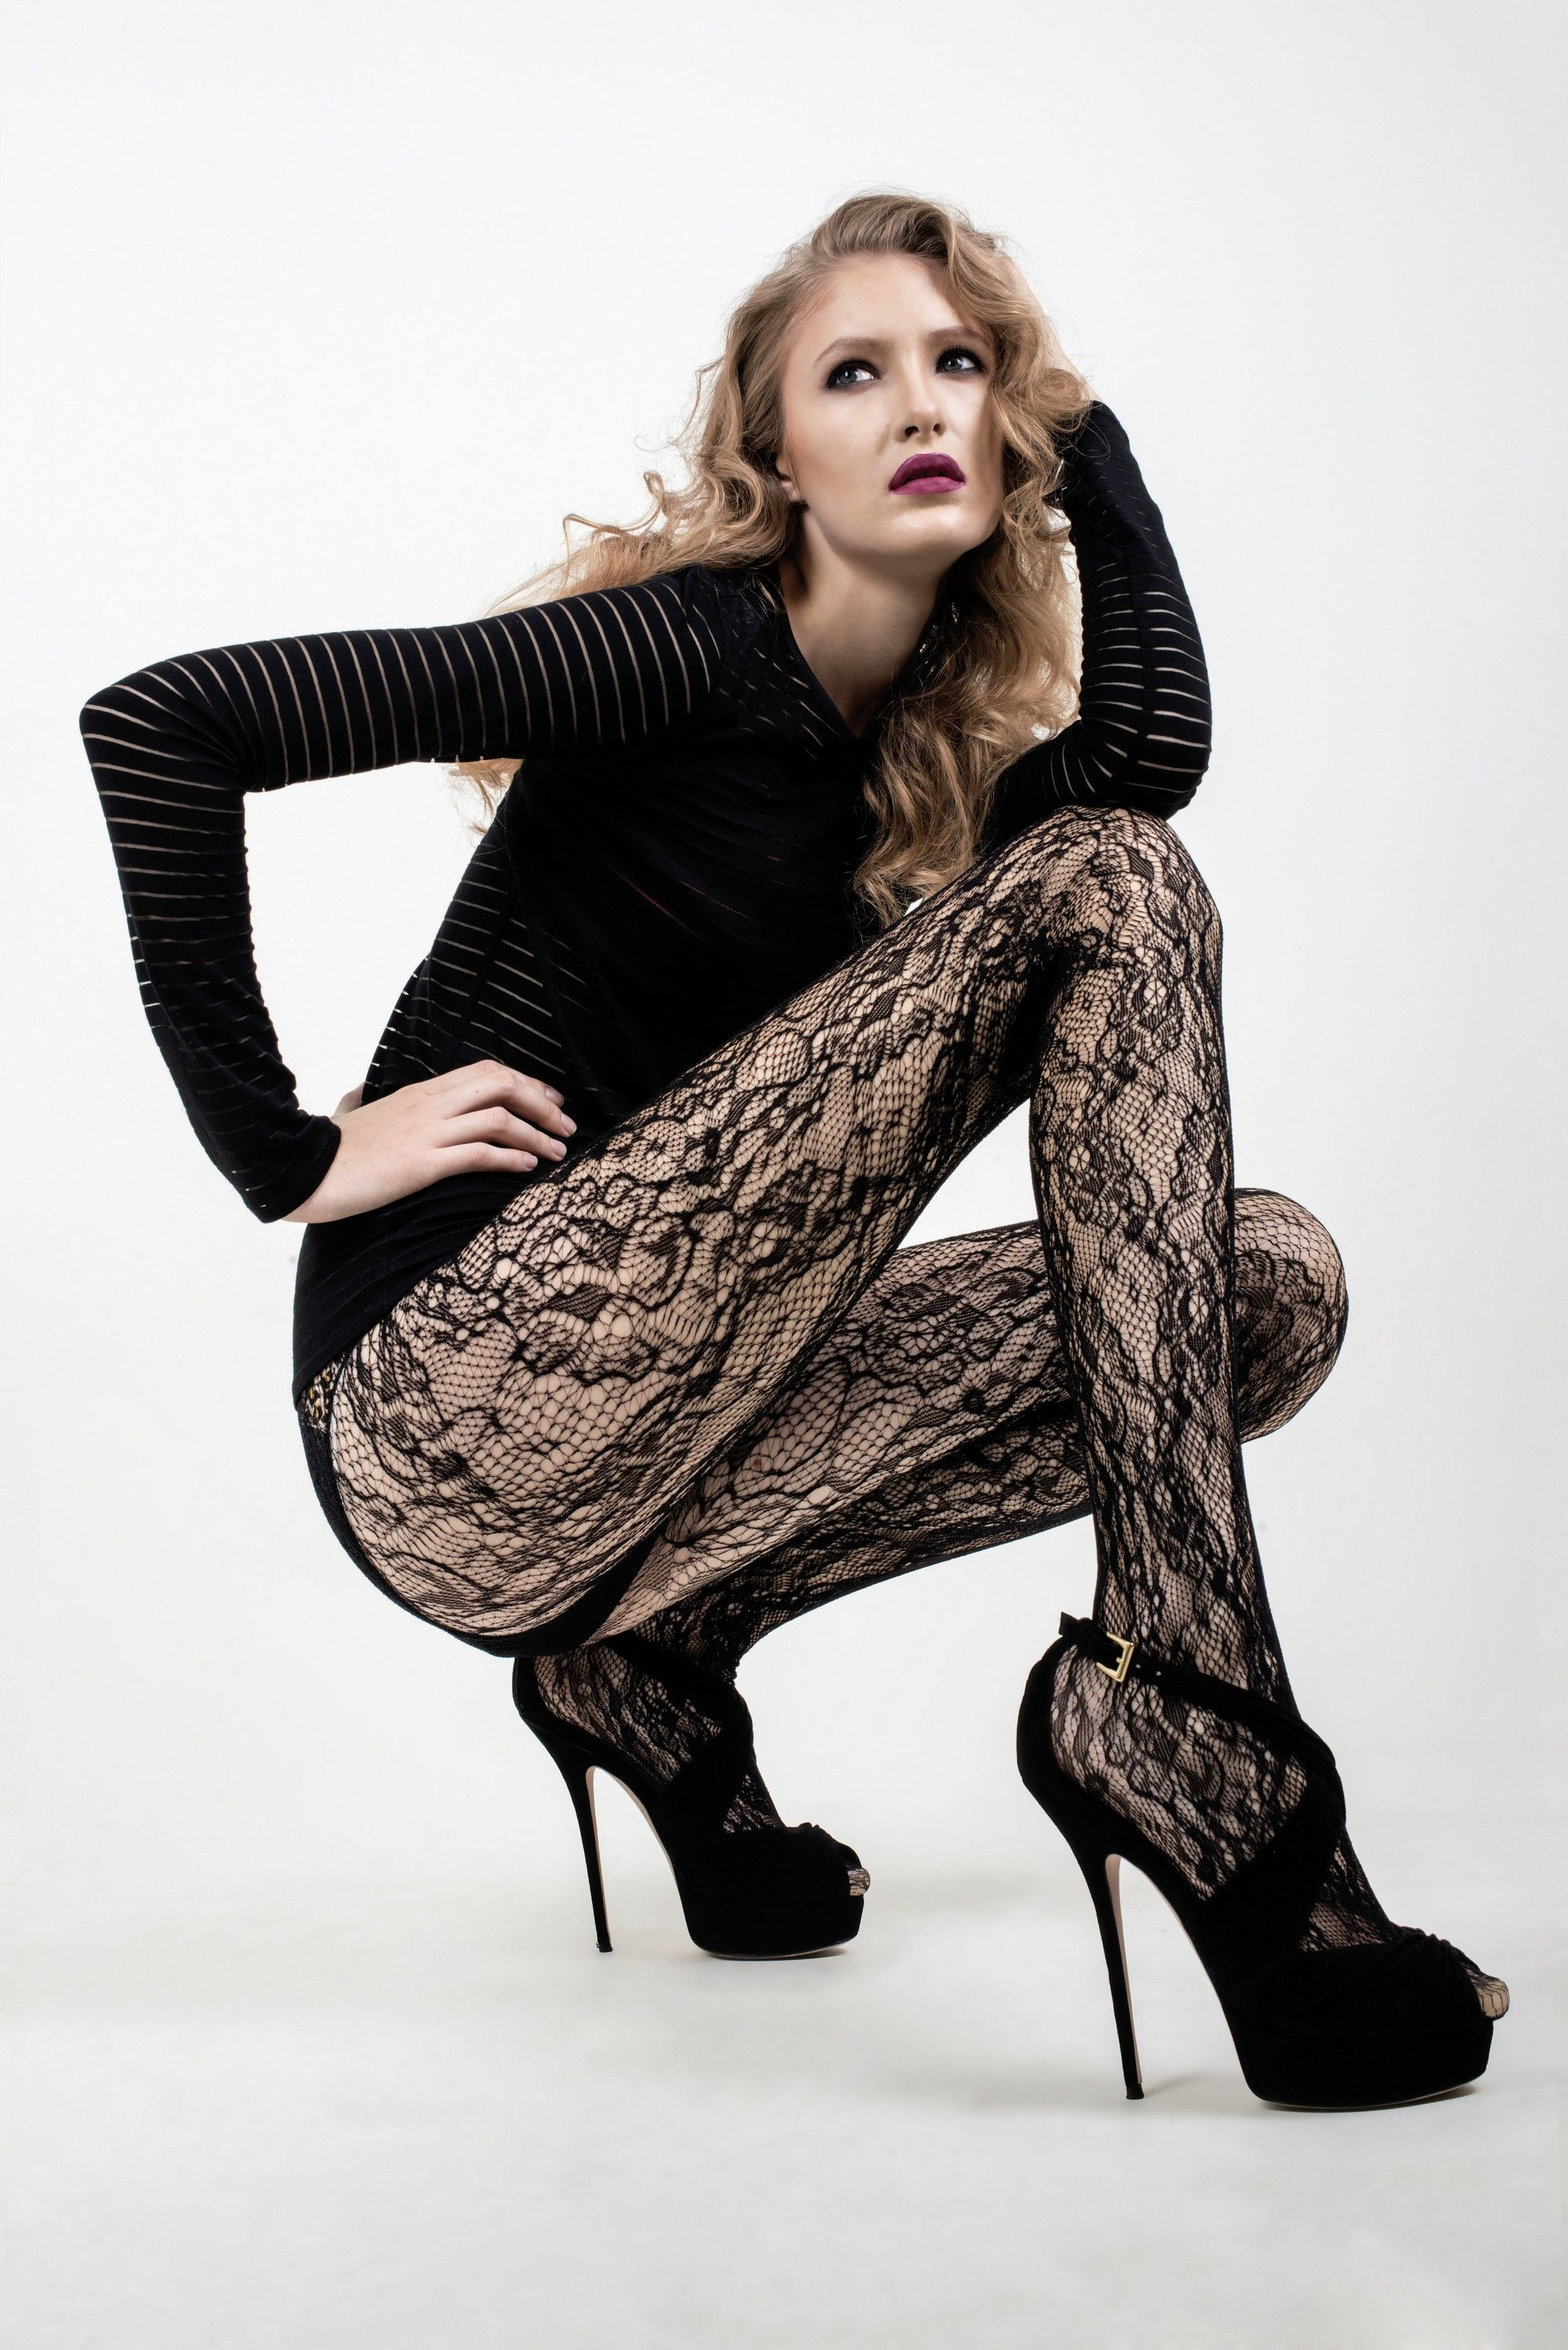 2e5d870ab Look like a total babe in these sexy fishnet pantyhose featuring a  Decorative Efflorescence Flowers. SHOP NOW AT WWW.ICONOFLASH.COM